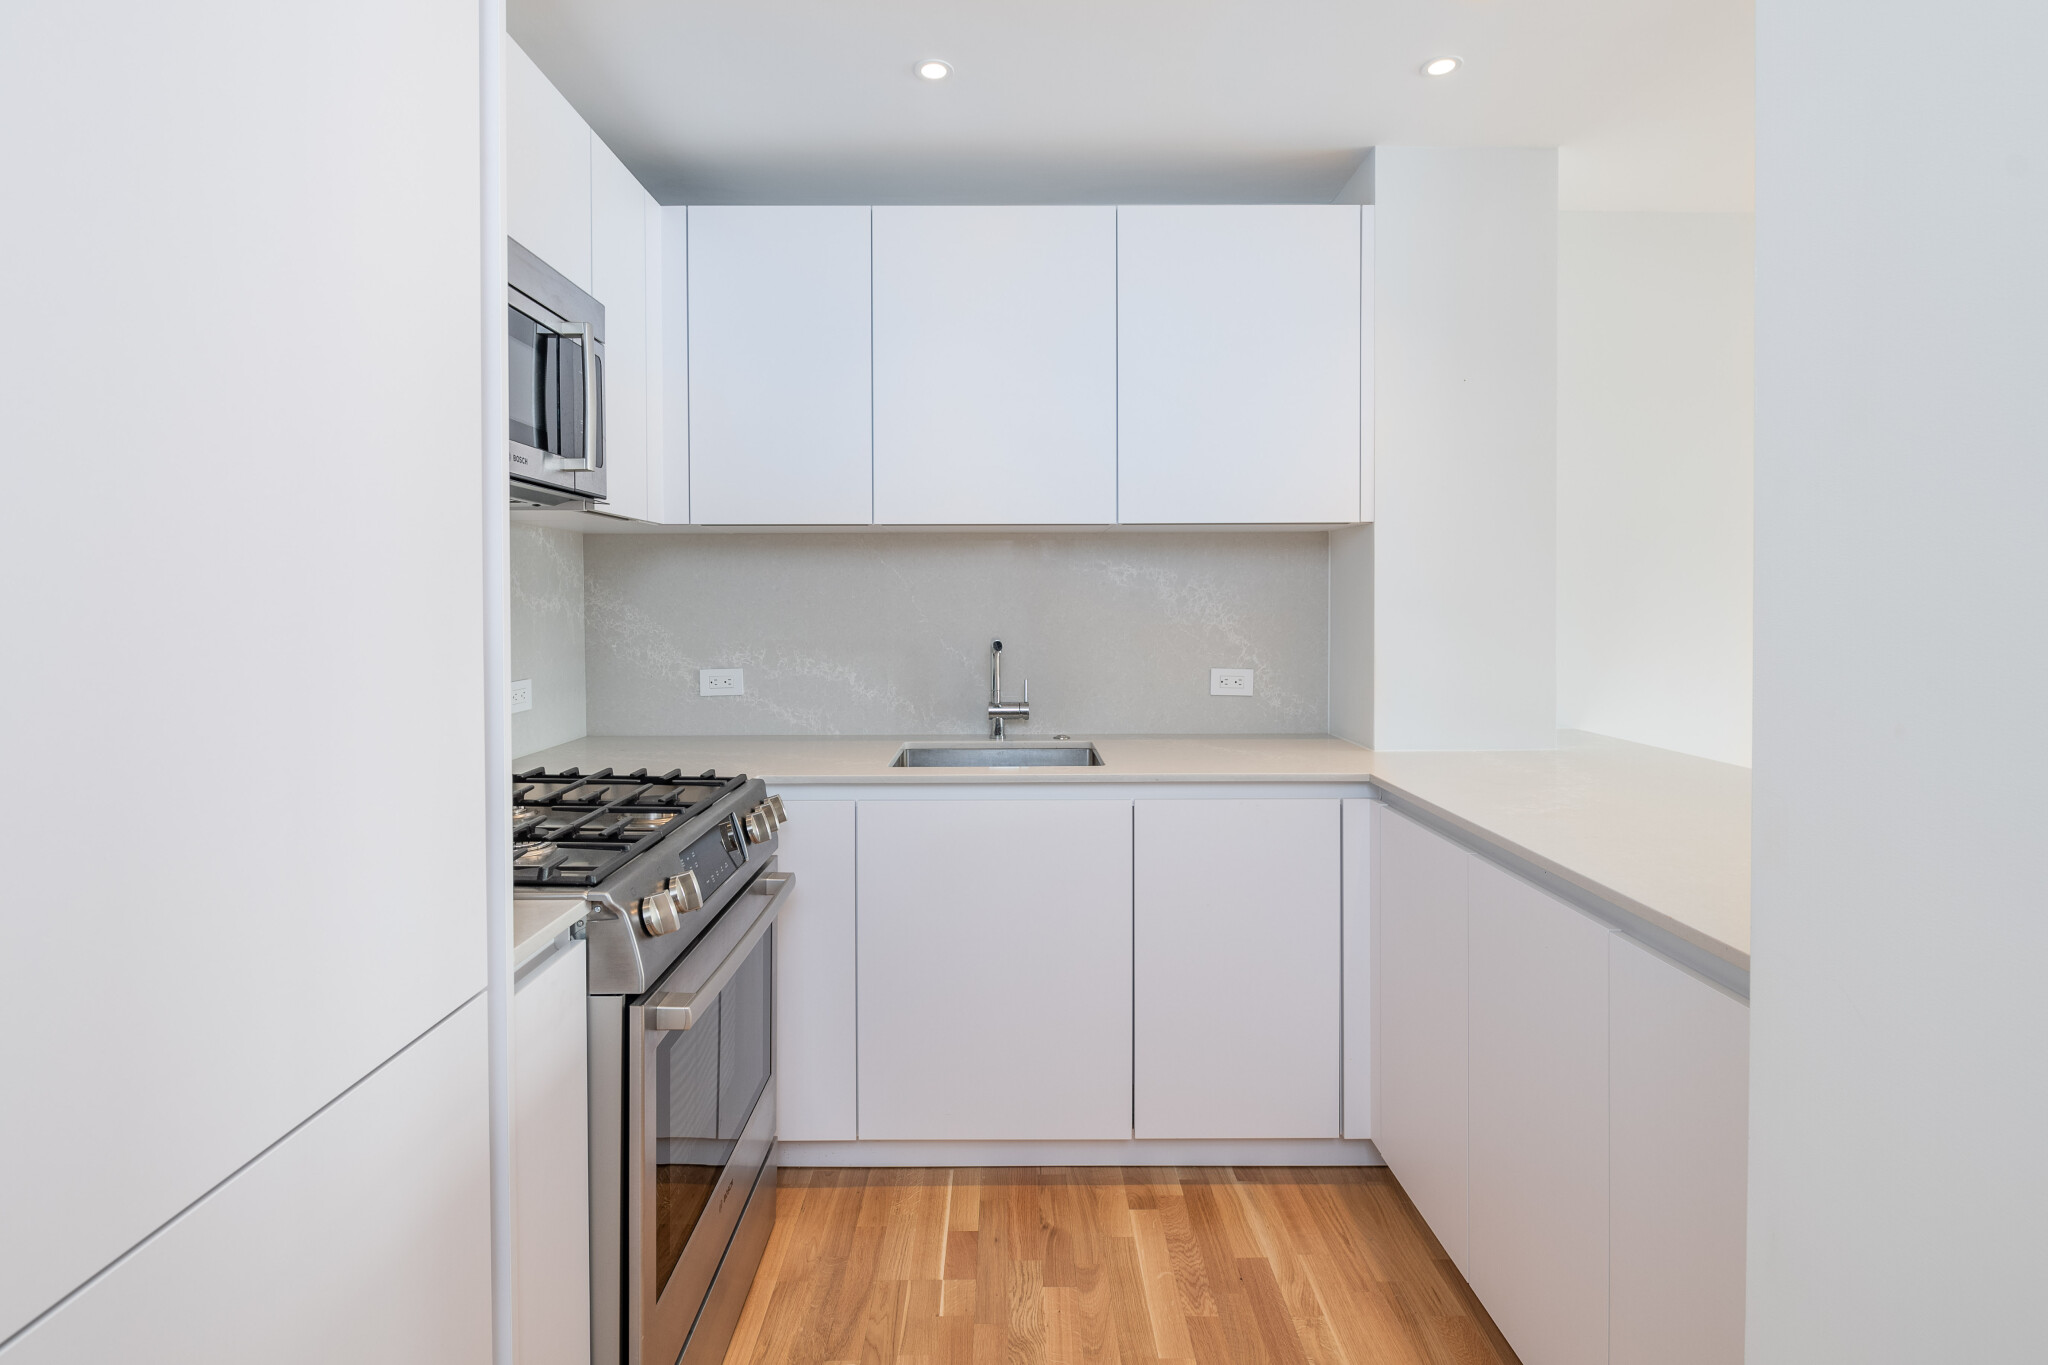 2 Beds, 1 Bath apartment in Boston, South Boston for $2,895